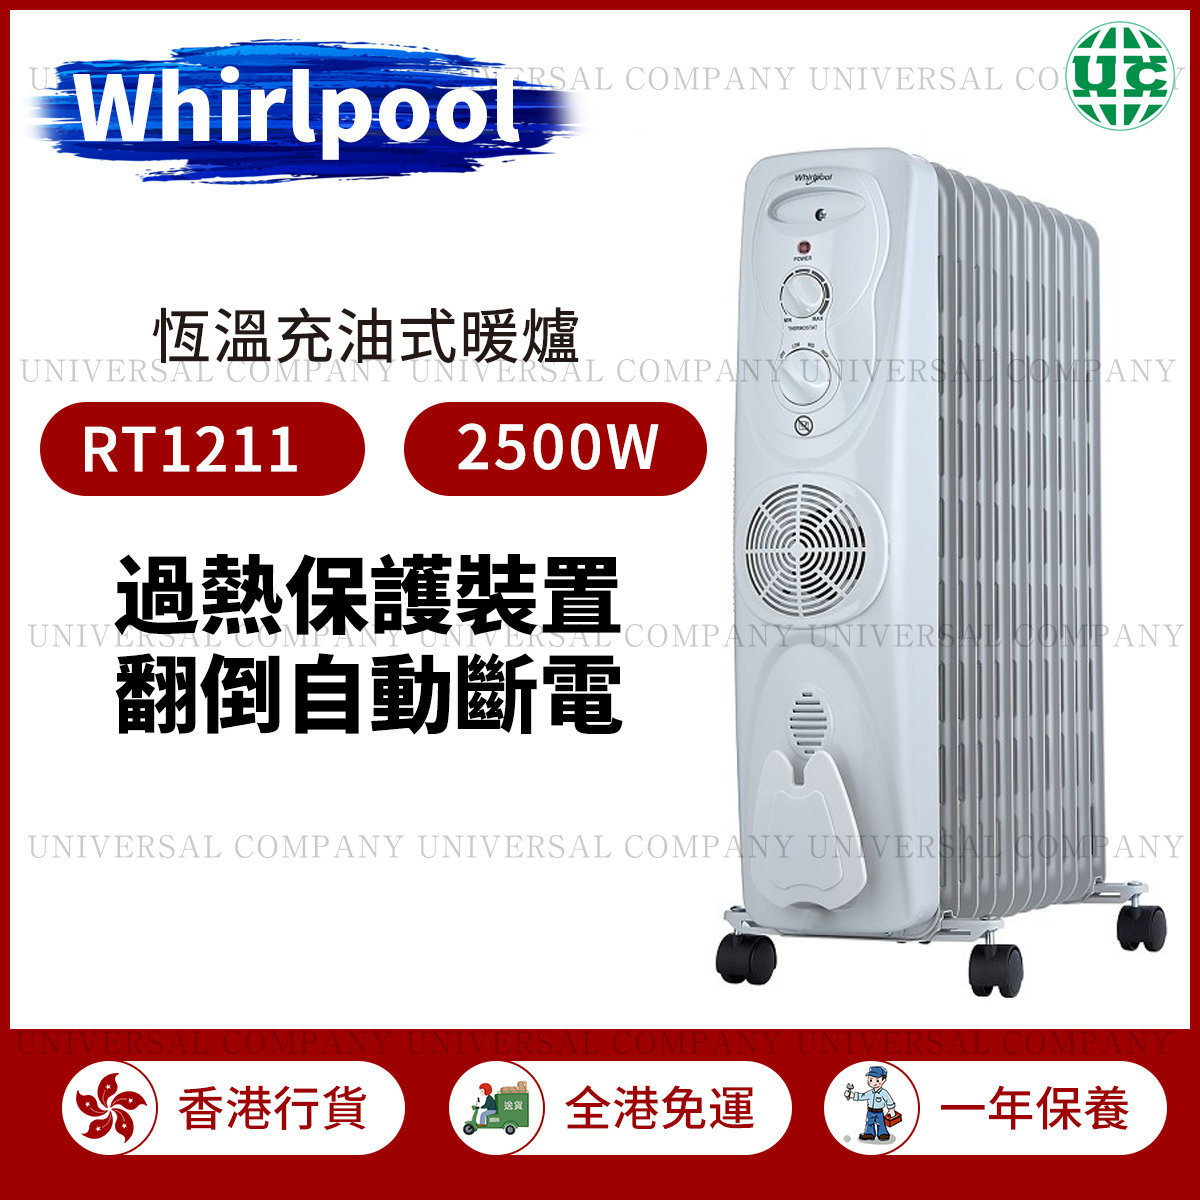 RT1211 2500W constant temperature oil-filled heater (licensed from Hong Kong)